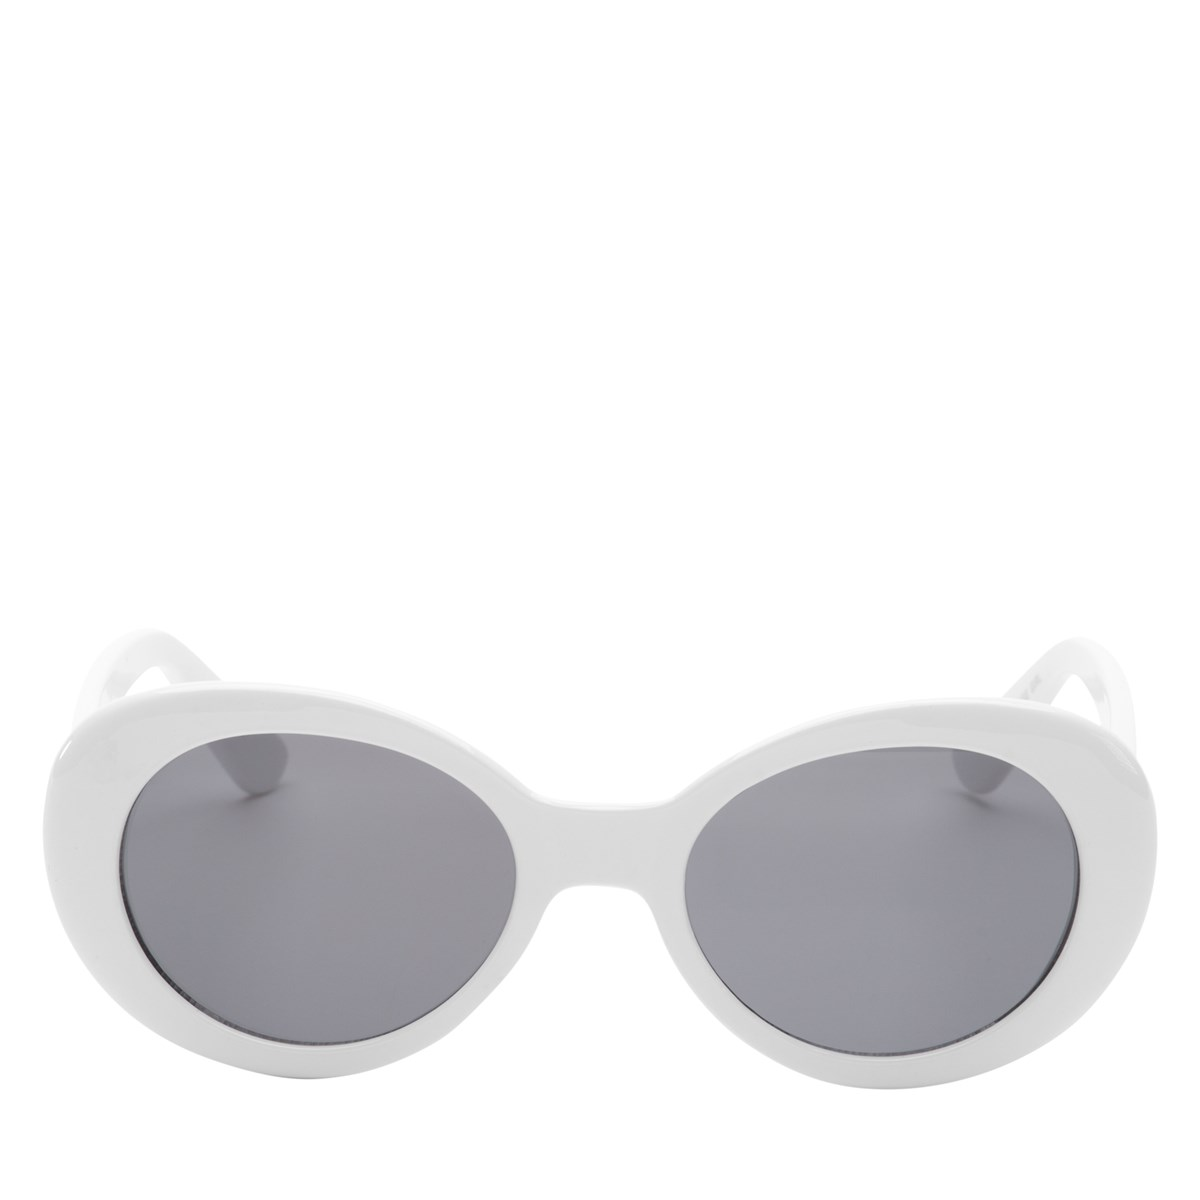 The Grunge Girl Sunglasses in White